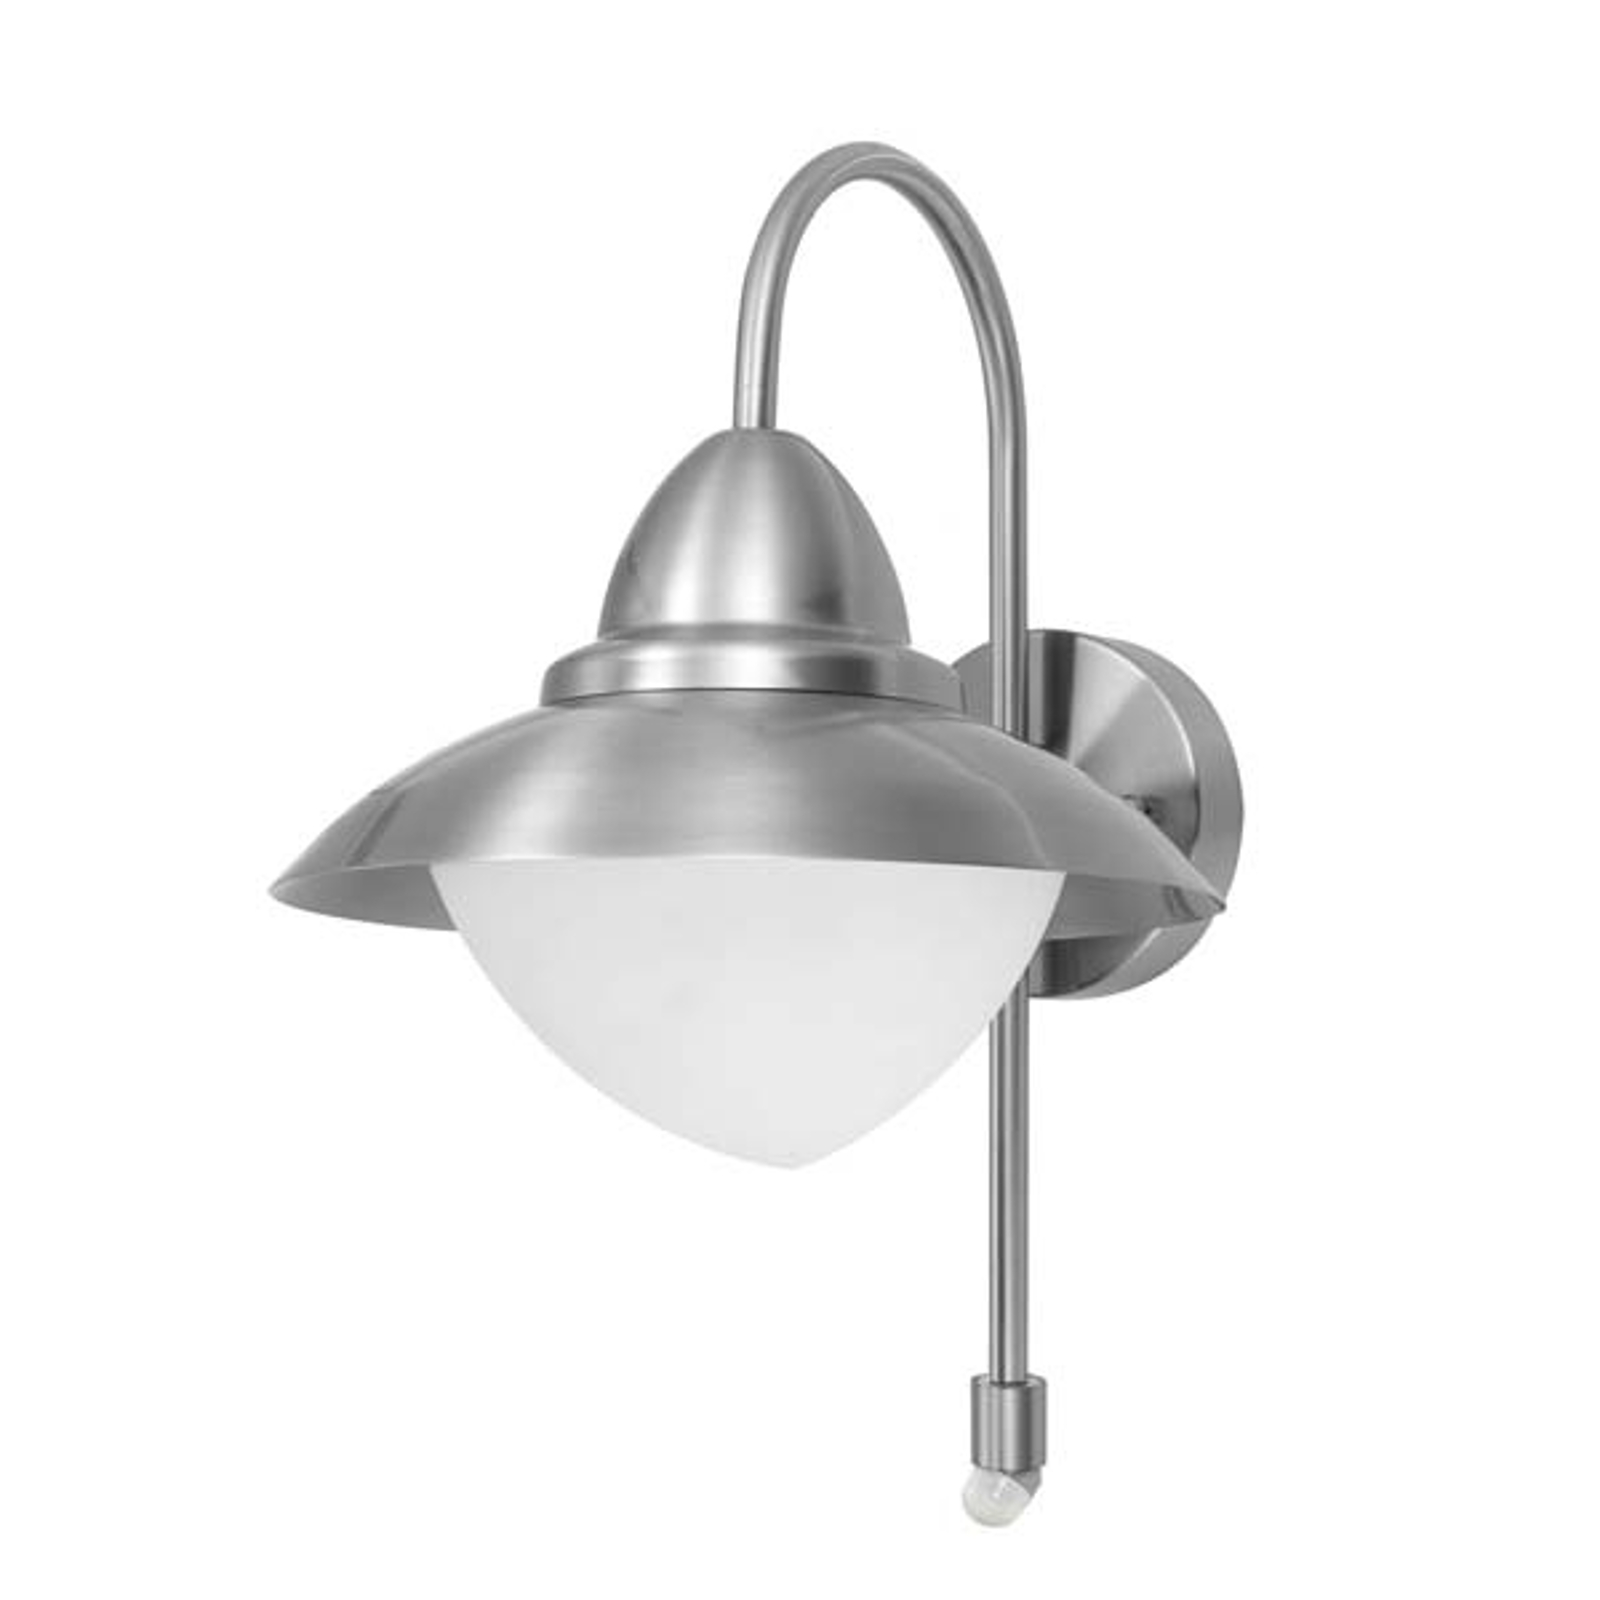 Wall light Sidney with motion detector_3000092_1